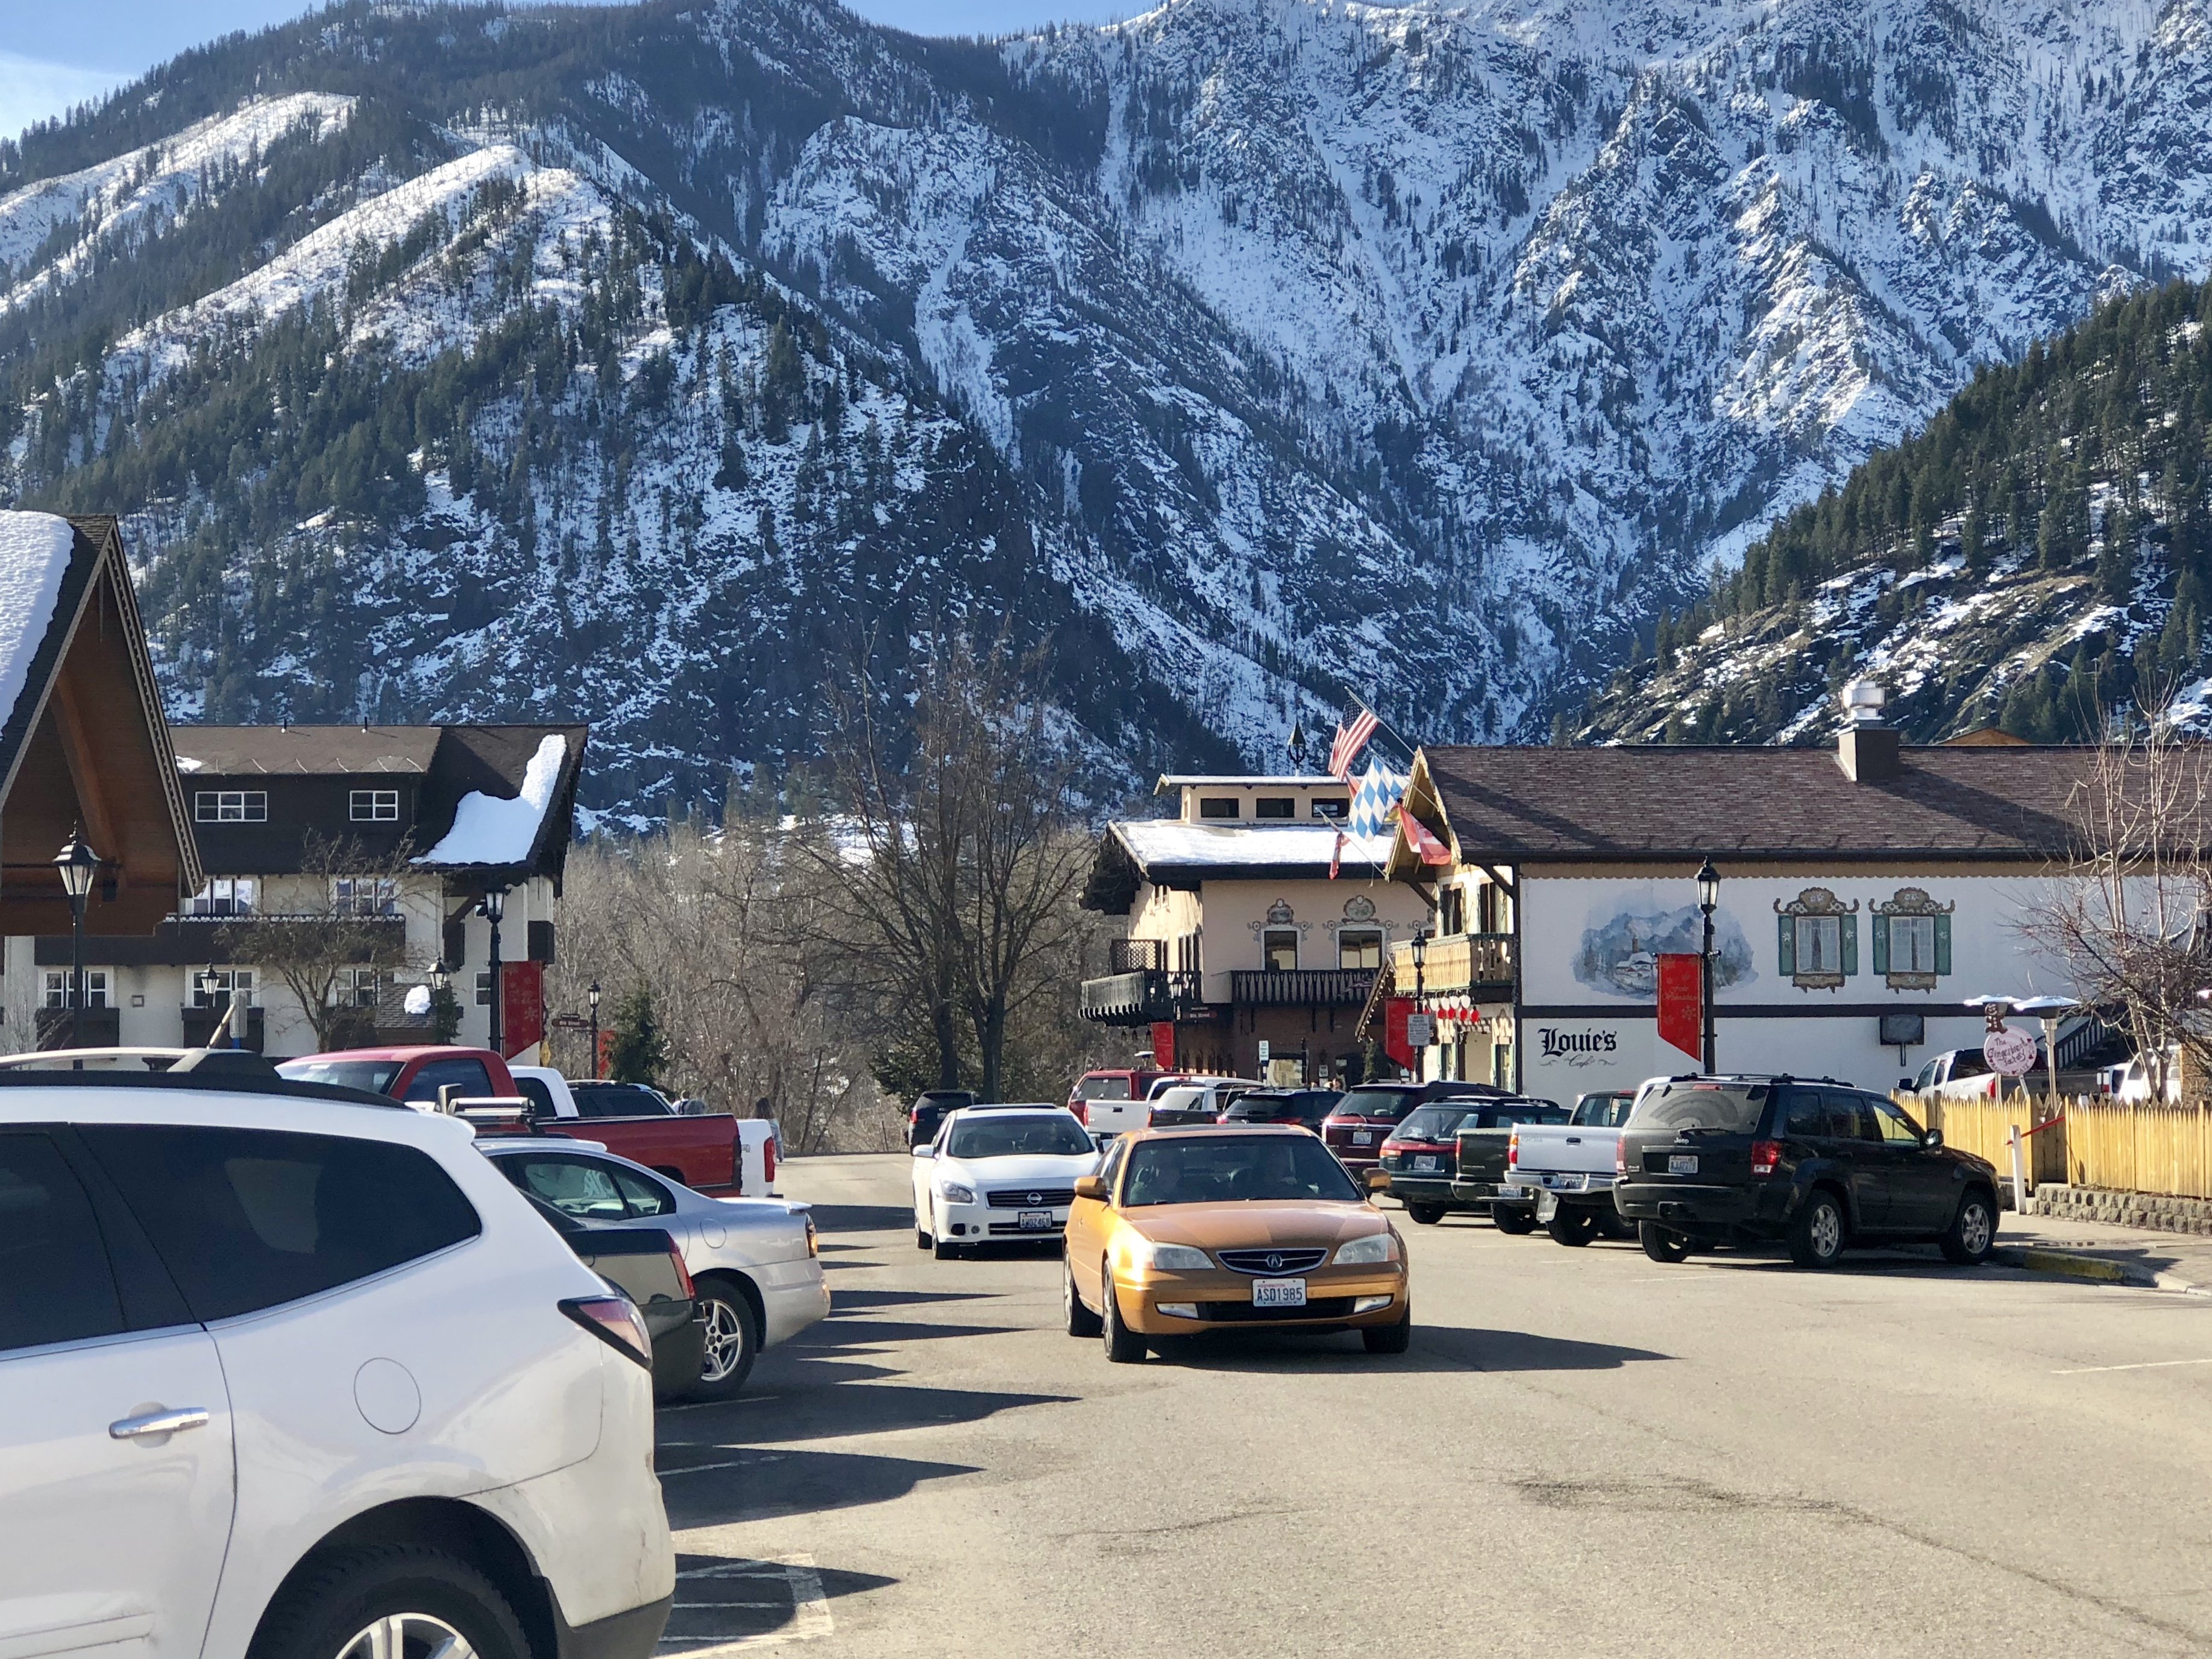 The town of Leavenworth. Photograph by Rianna Ricards 2/03/2018. Blogs Writer